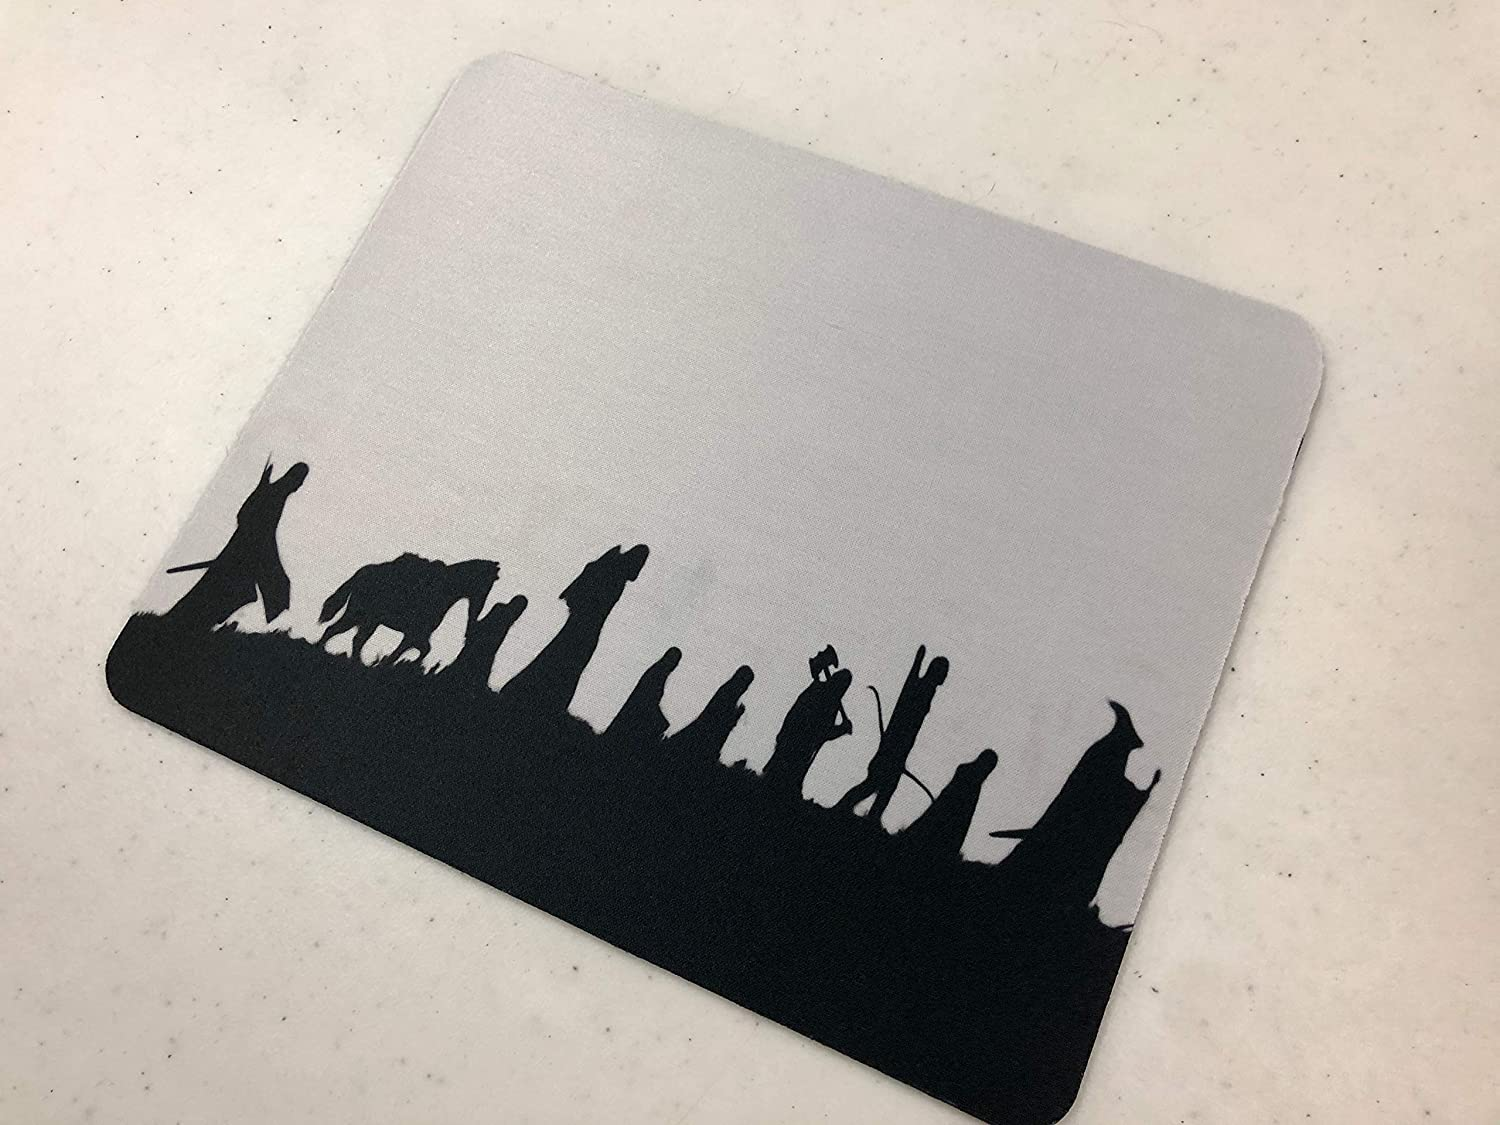 LOTR Heroes Silhouette Design Pattern Print Desktop Office Silicone Mouse Pad by Trendy Accessories